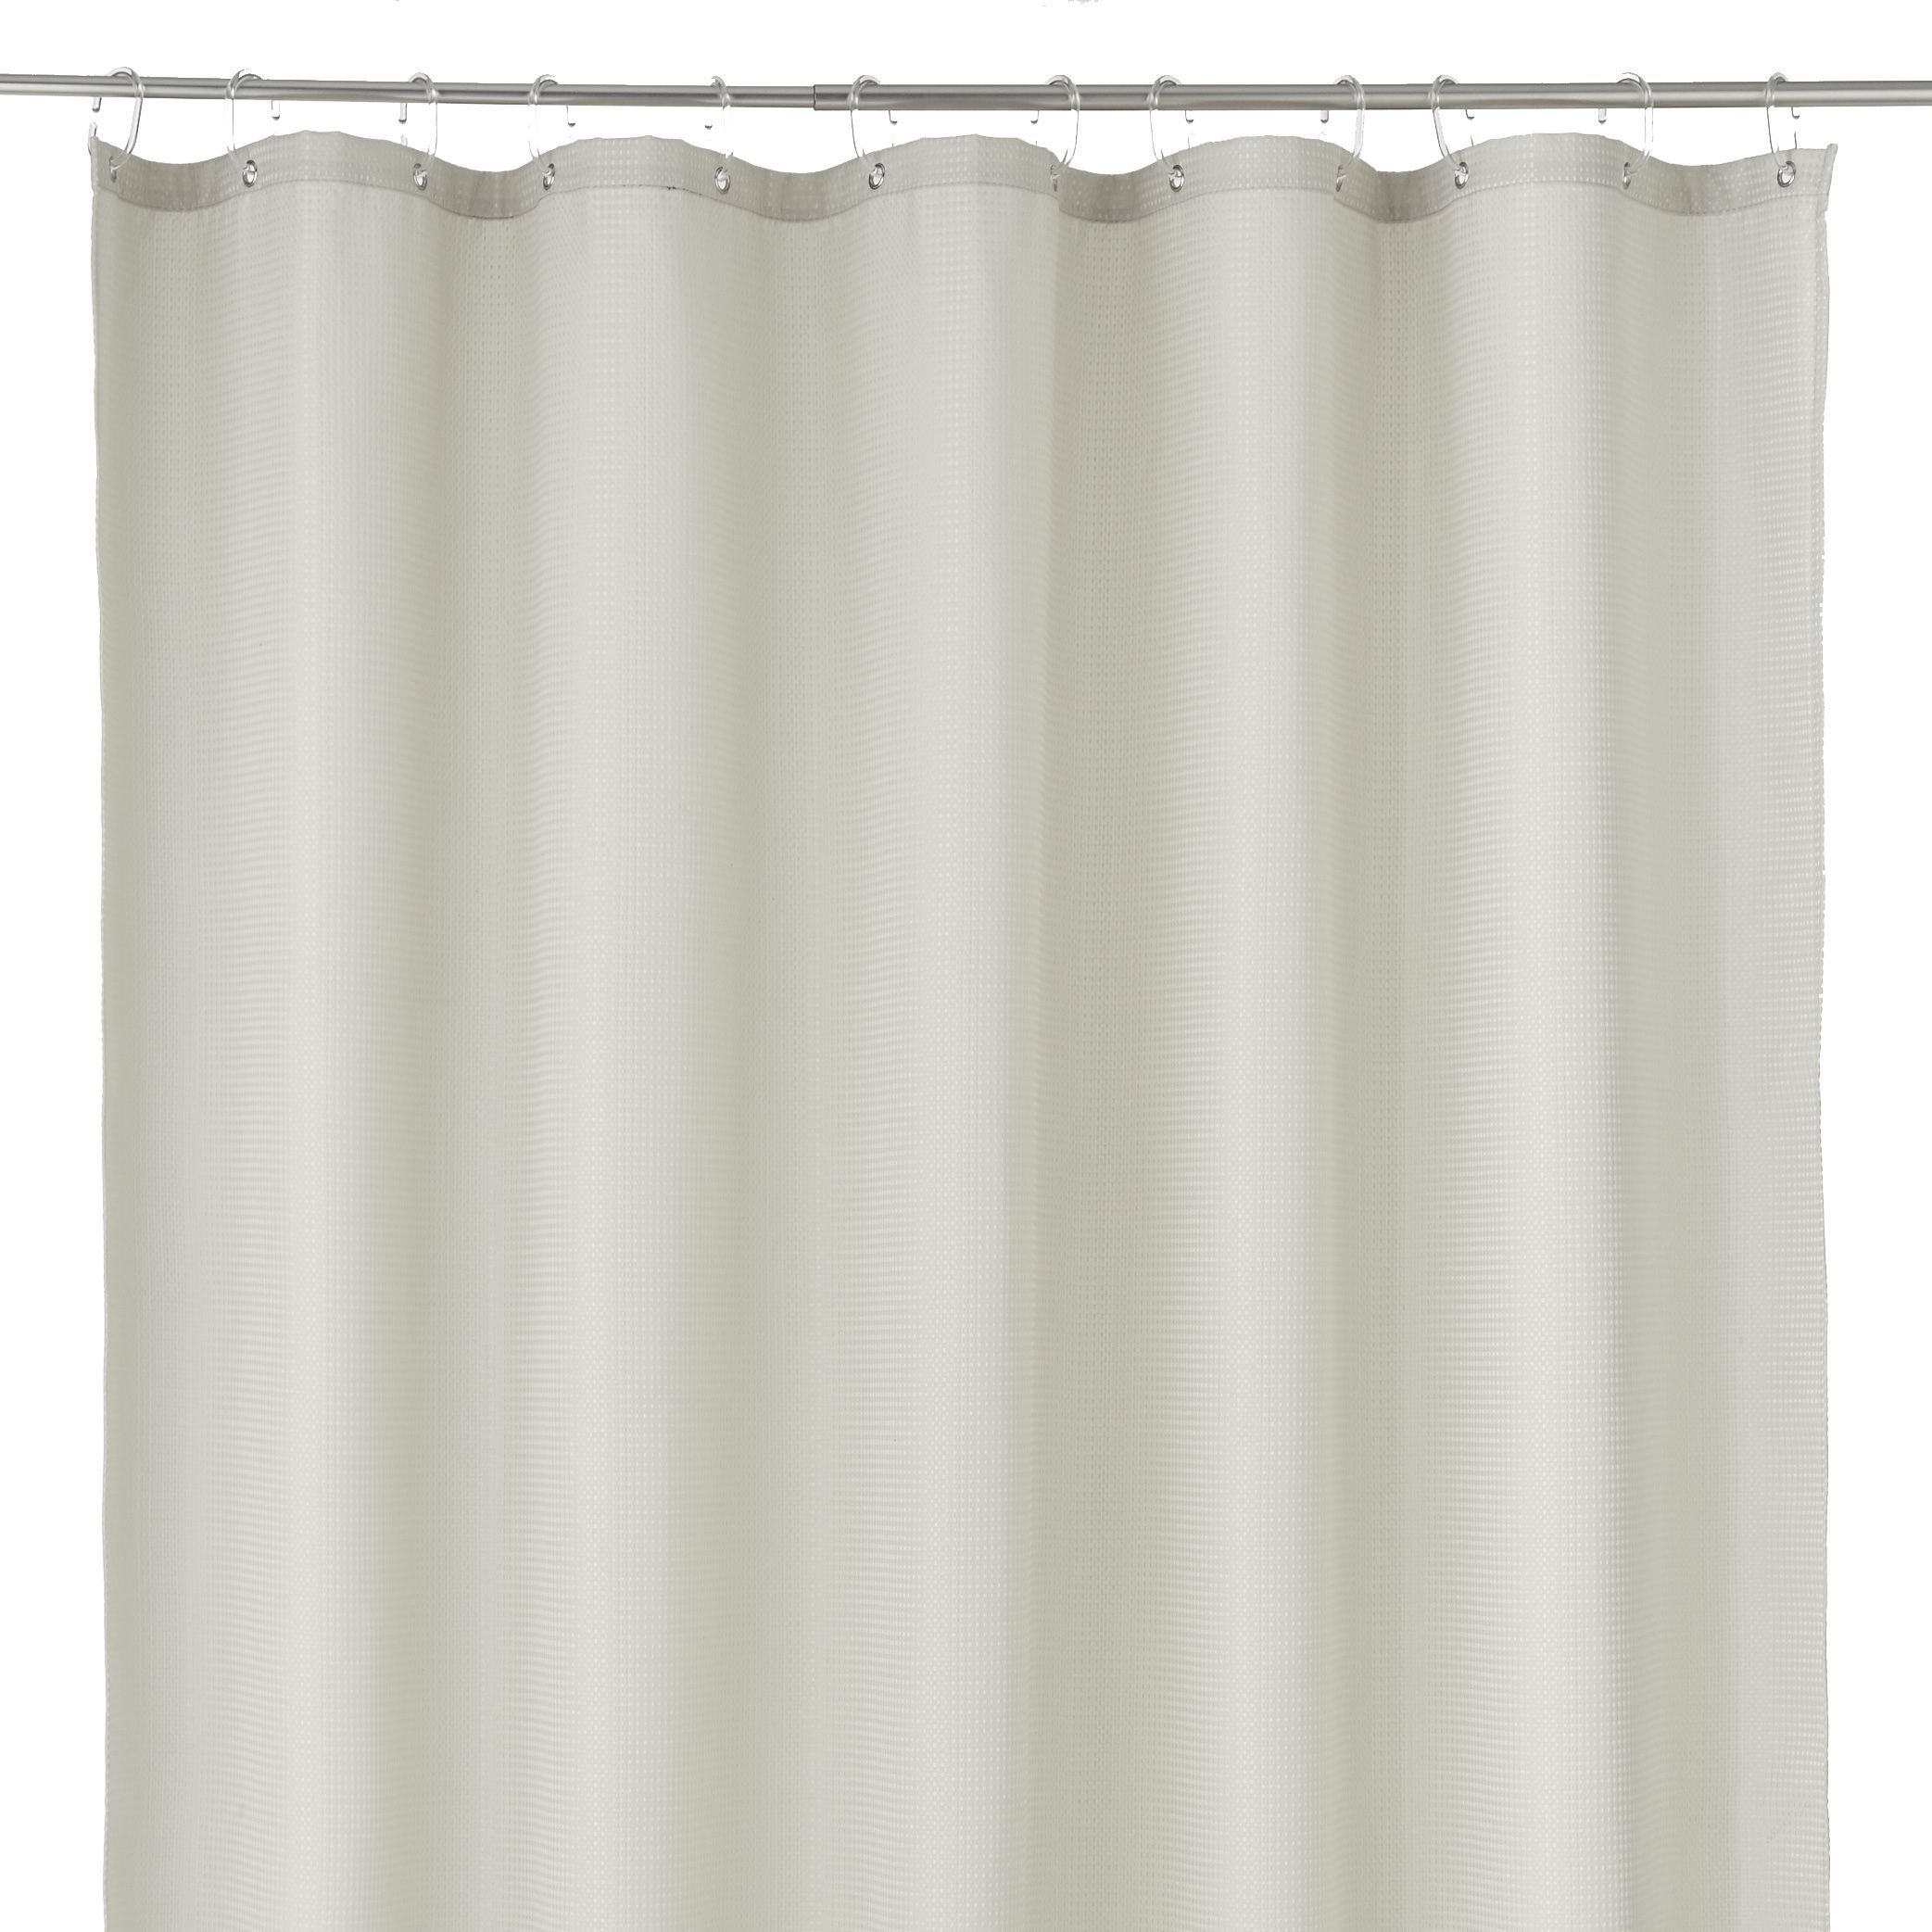 Cooke & Lewis Cecina Mastic Waffle Shower Curtain (l)1800 Mm